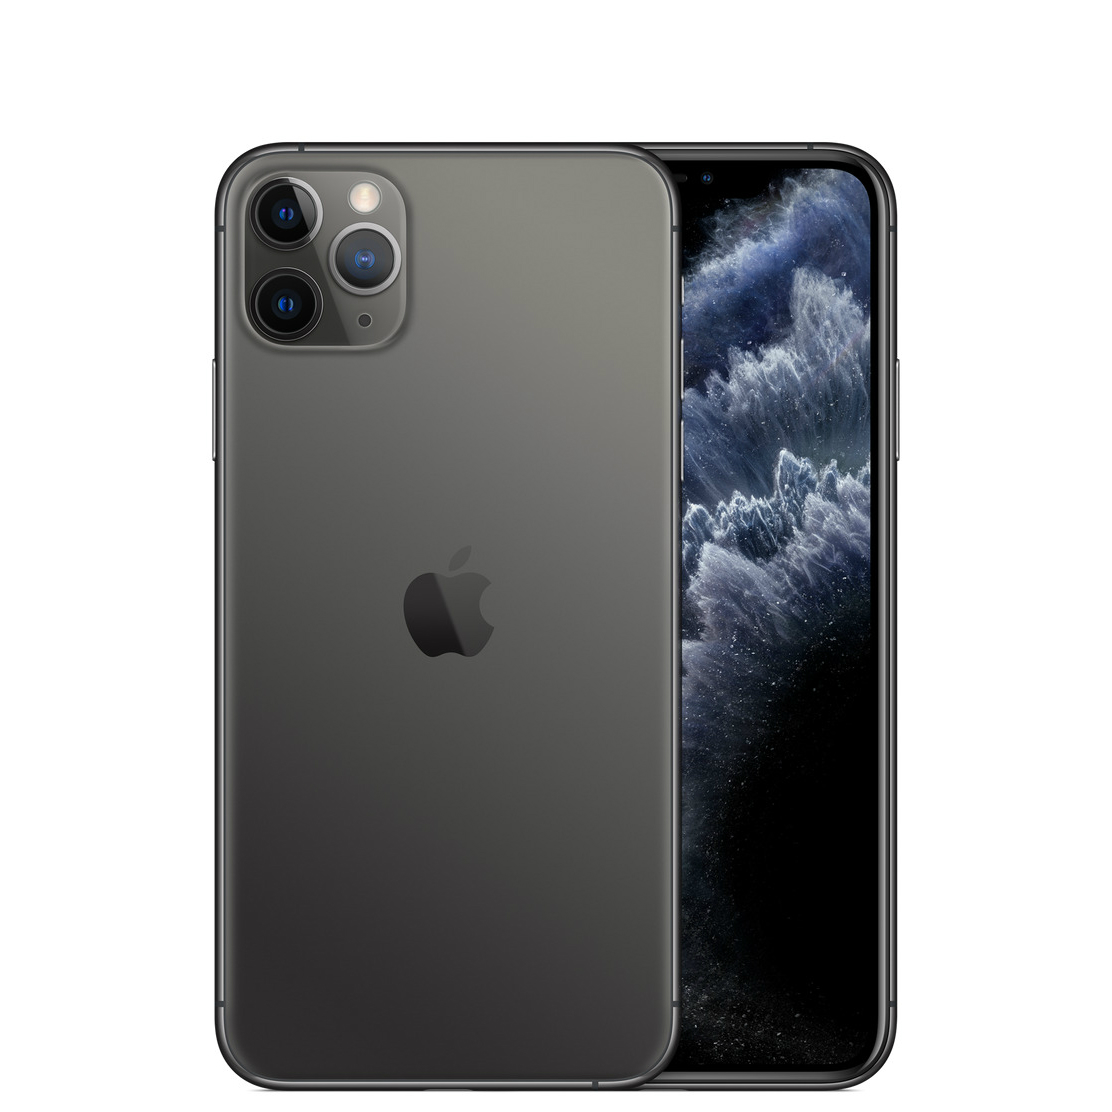 Image of Apple iPhone 11 Pro 64GB A2217 Dual Sim with Tempered Glass Screen Protector - Space Gray